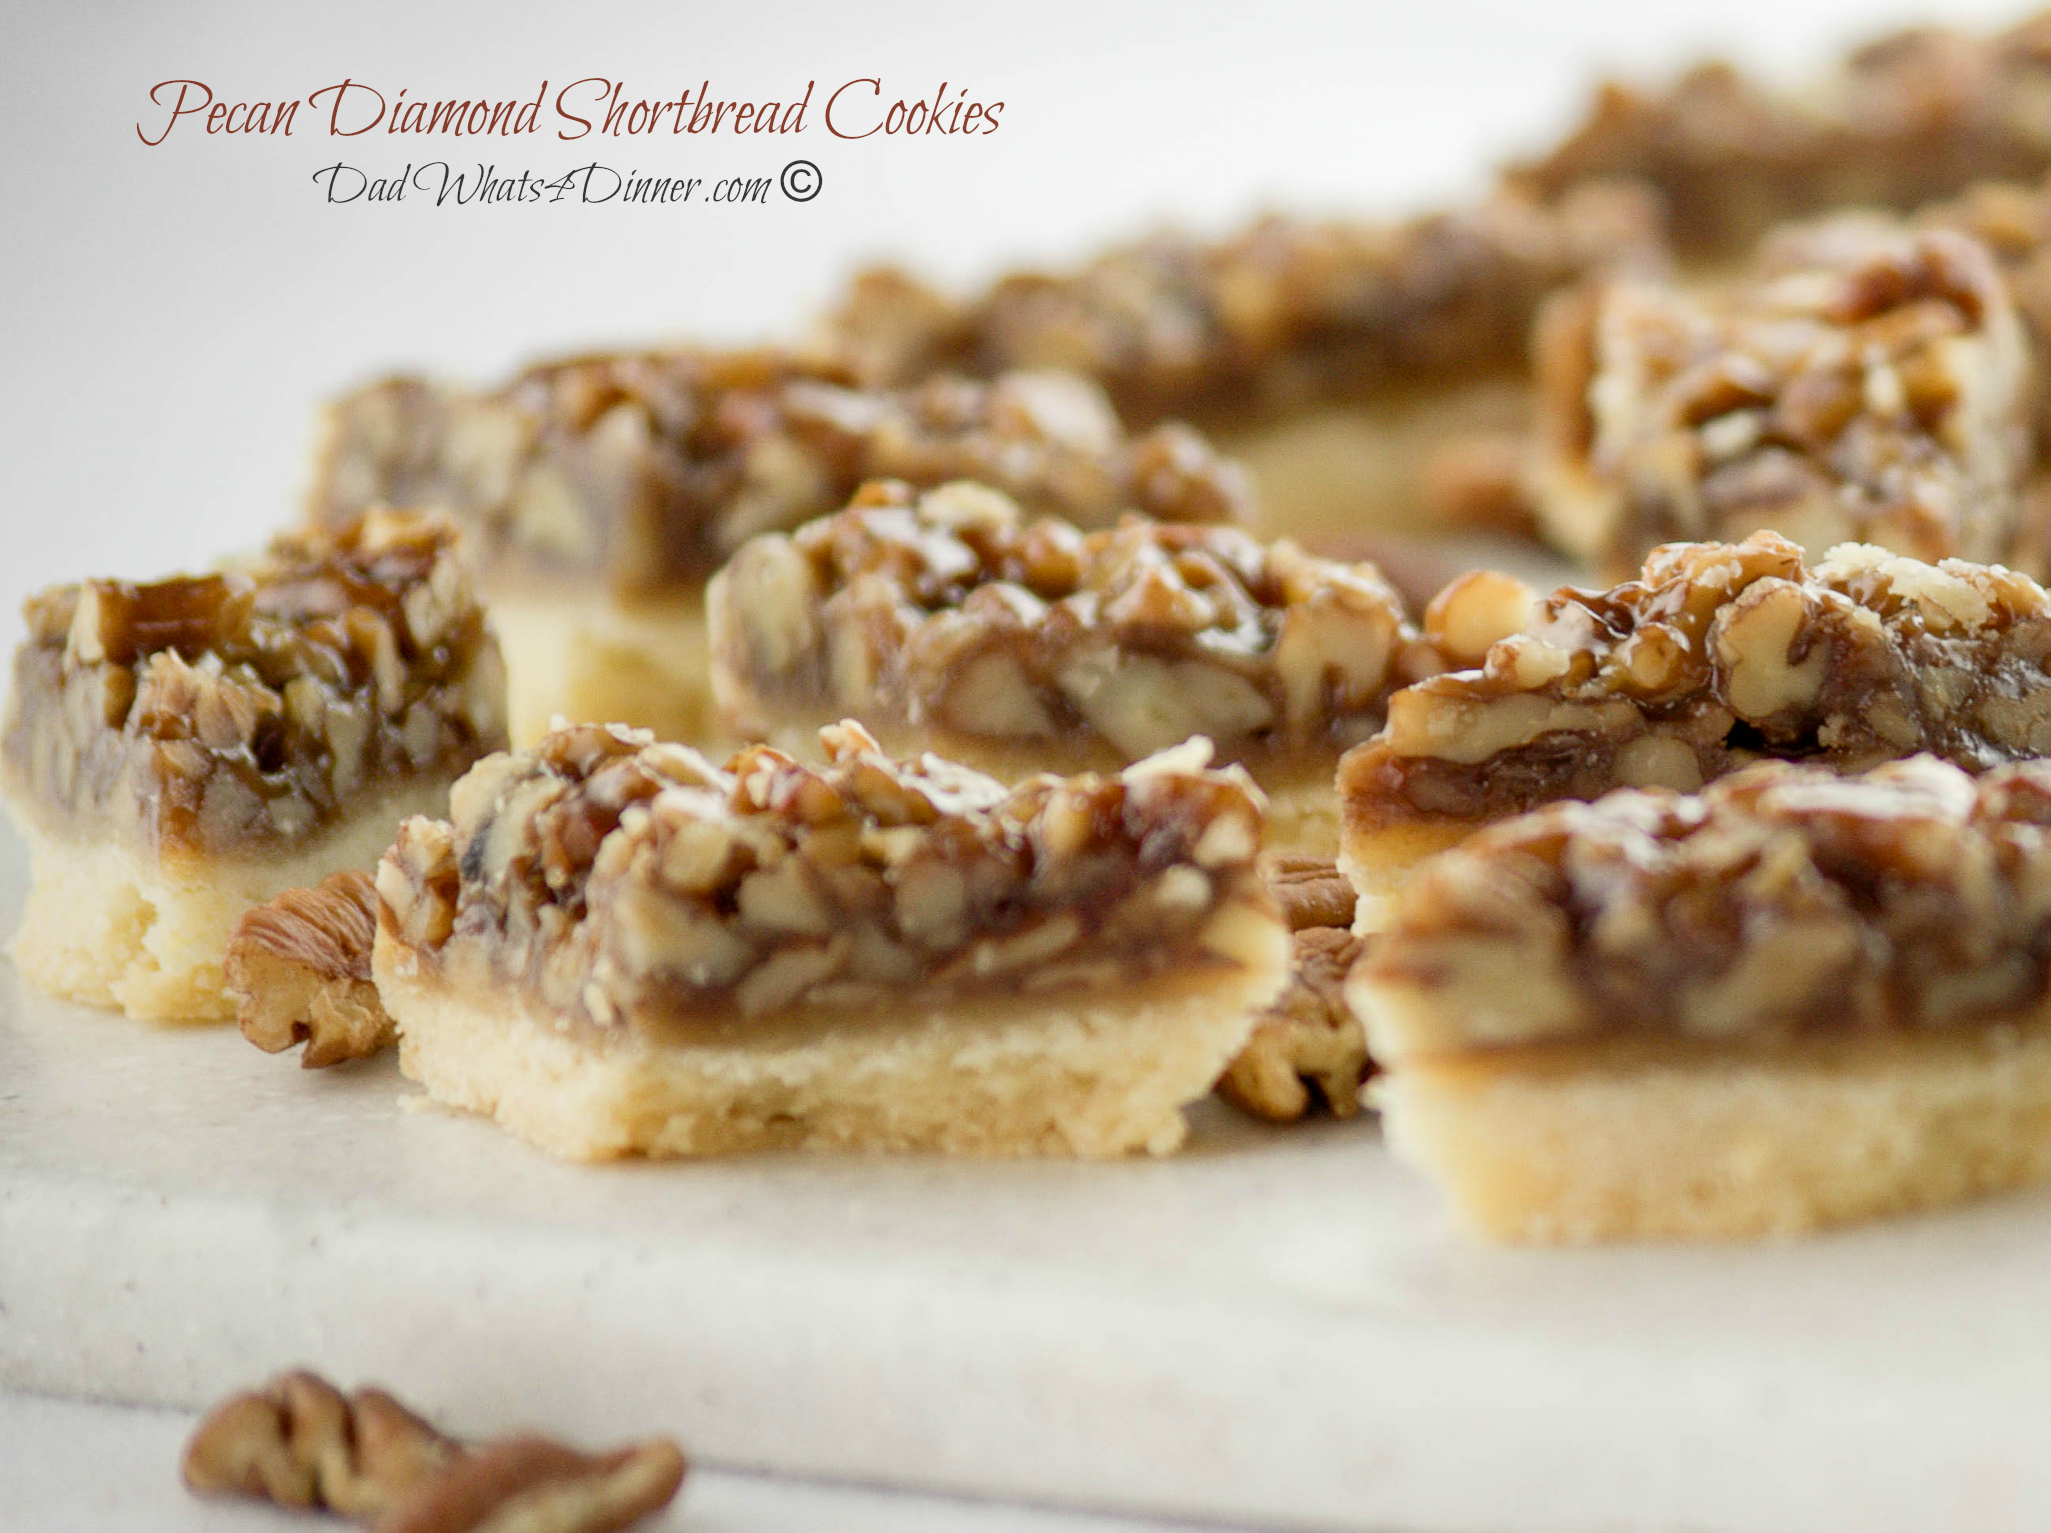 Pecan Diamond Shortbread Cookies | www.dadwhats4dinner.com